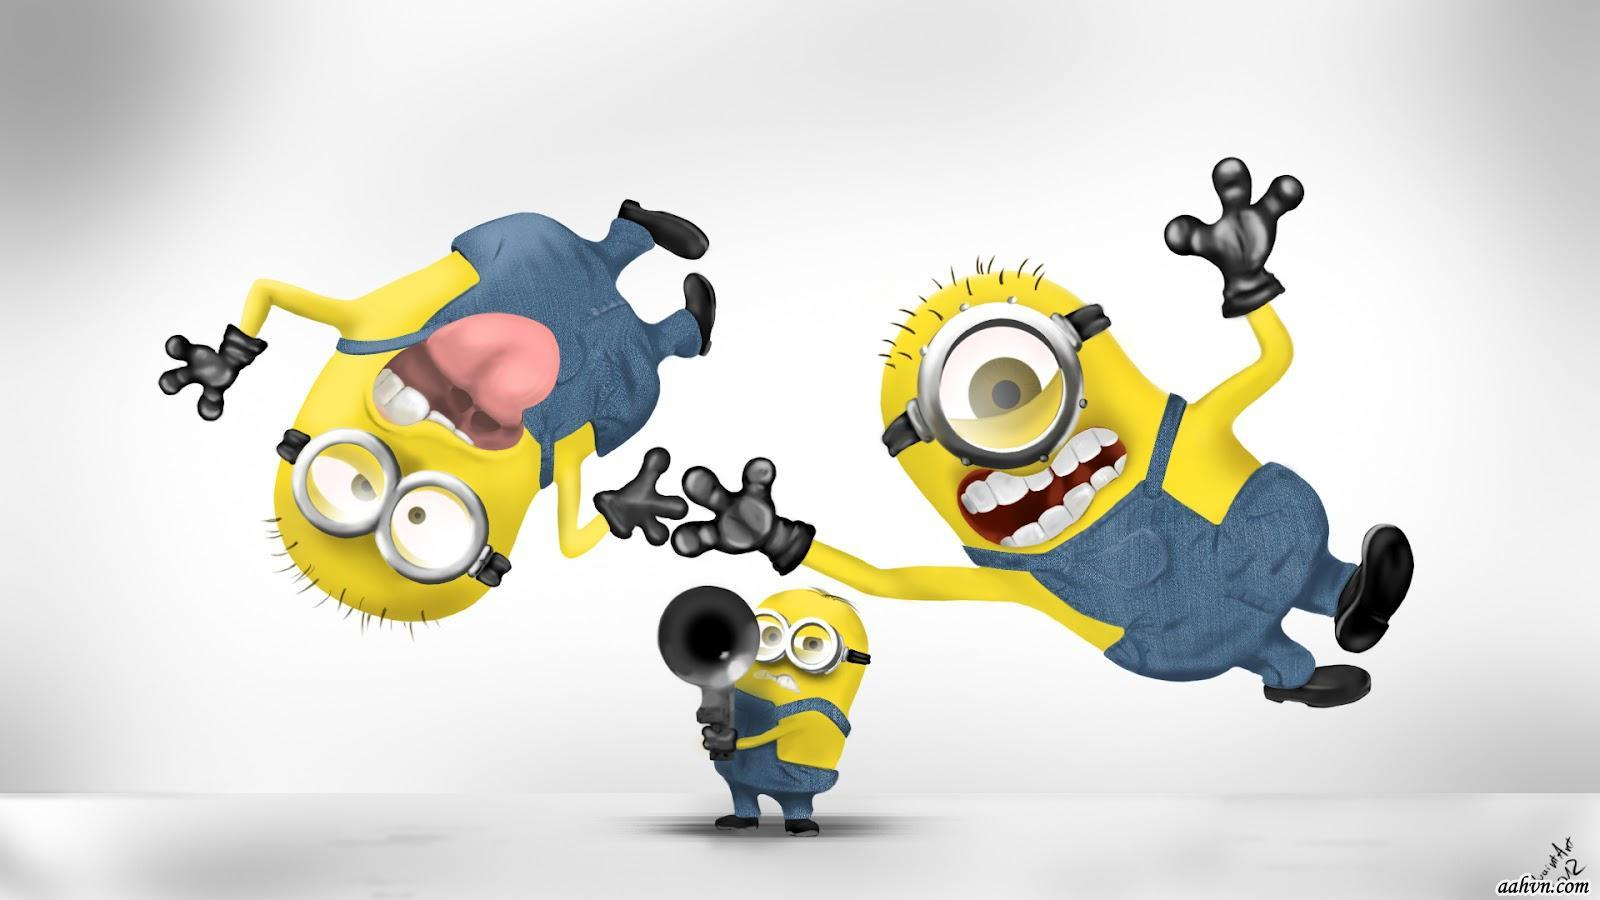 Download HD Minion Wallpapers for Mobile Phones